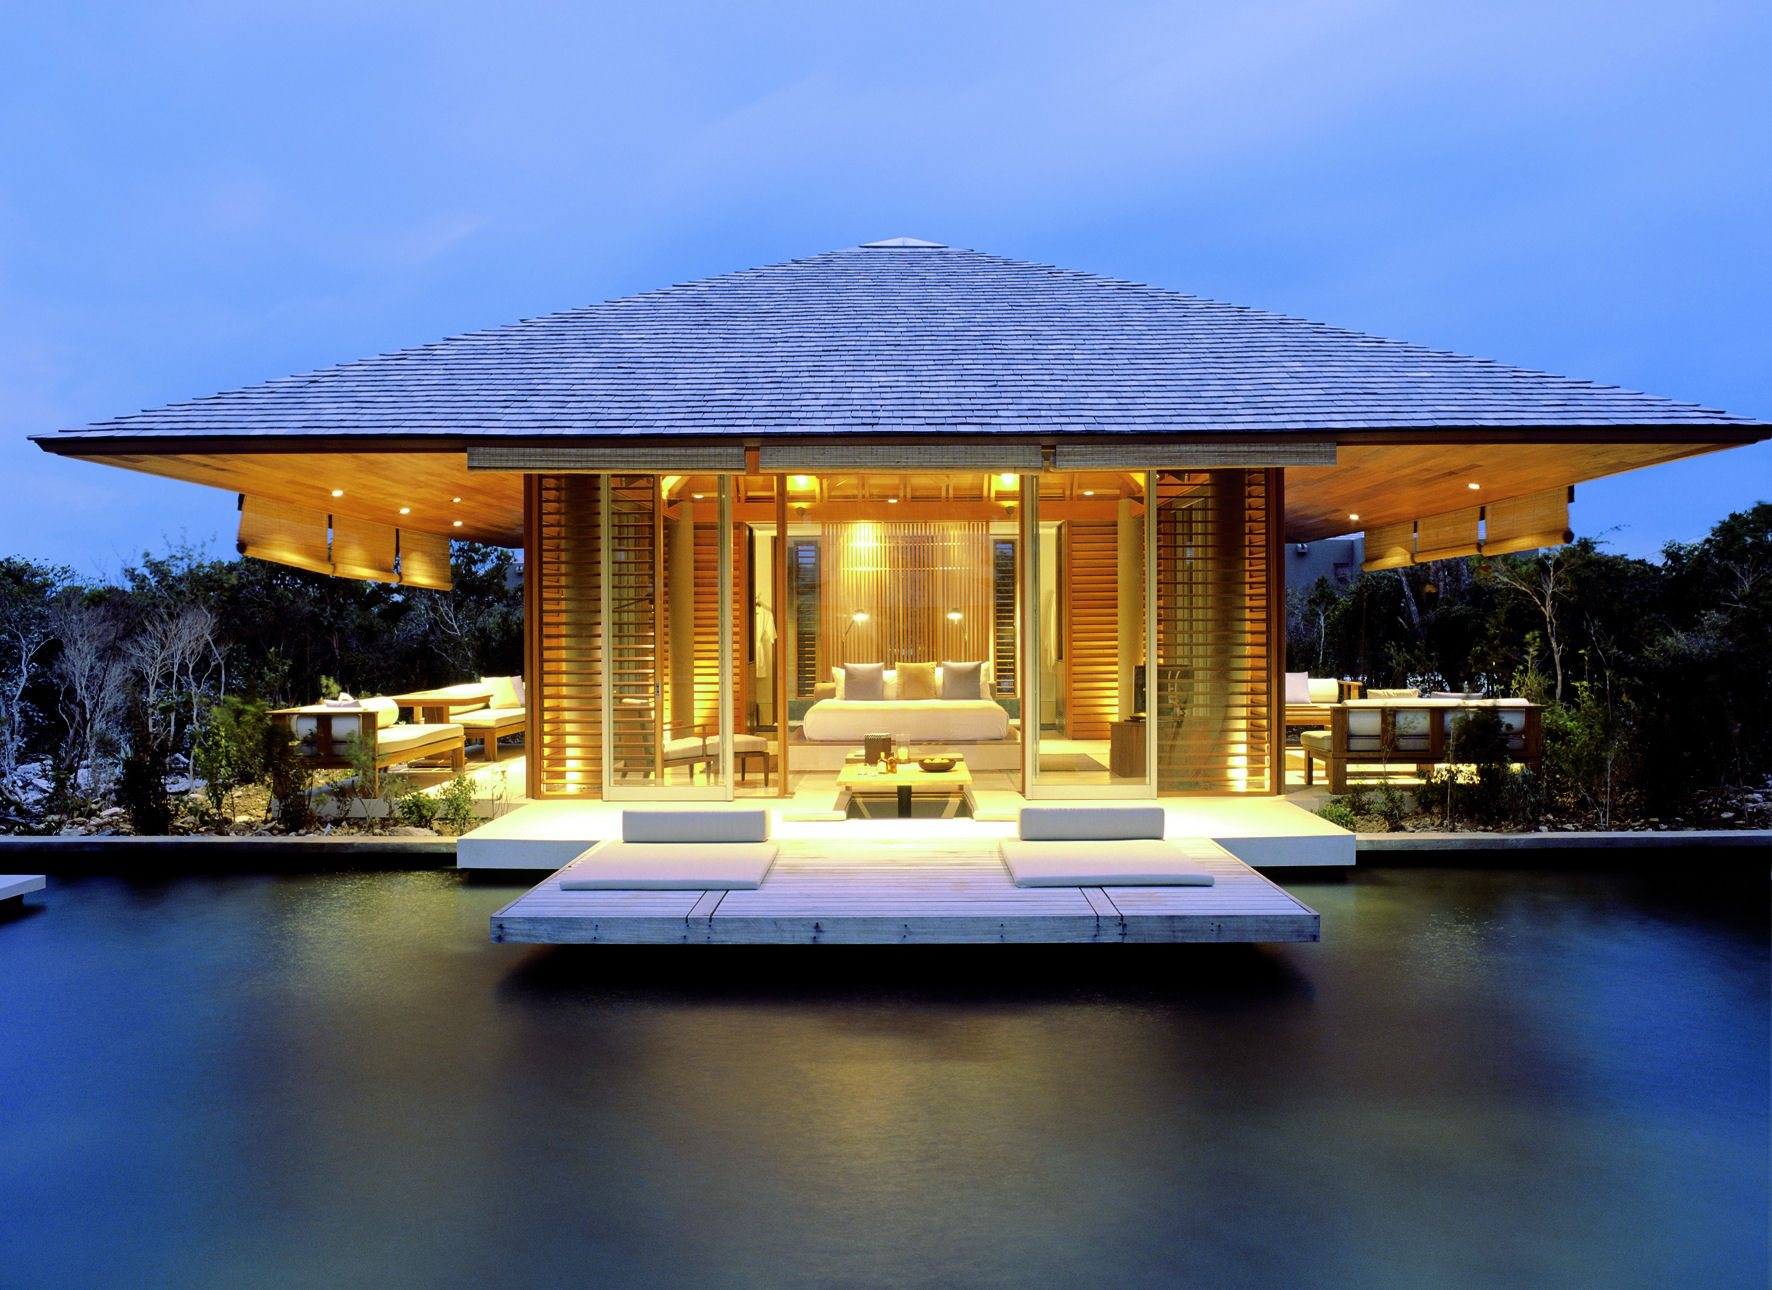 10 captivating luxury dream houses surely will catch your eye - Luxury Home Designers Architects